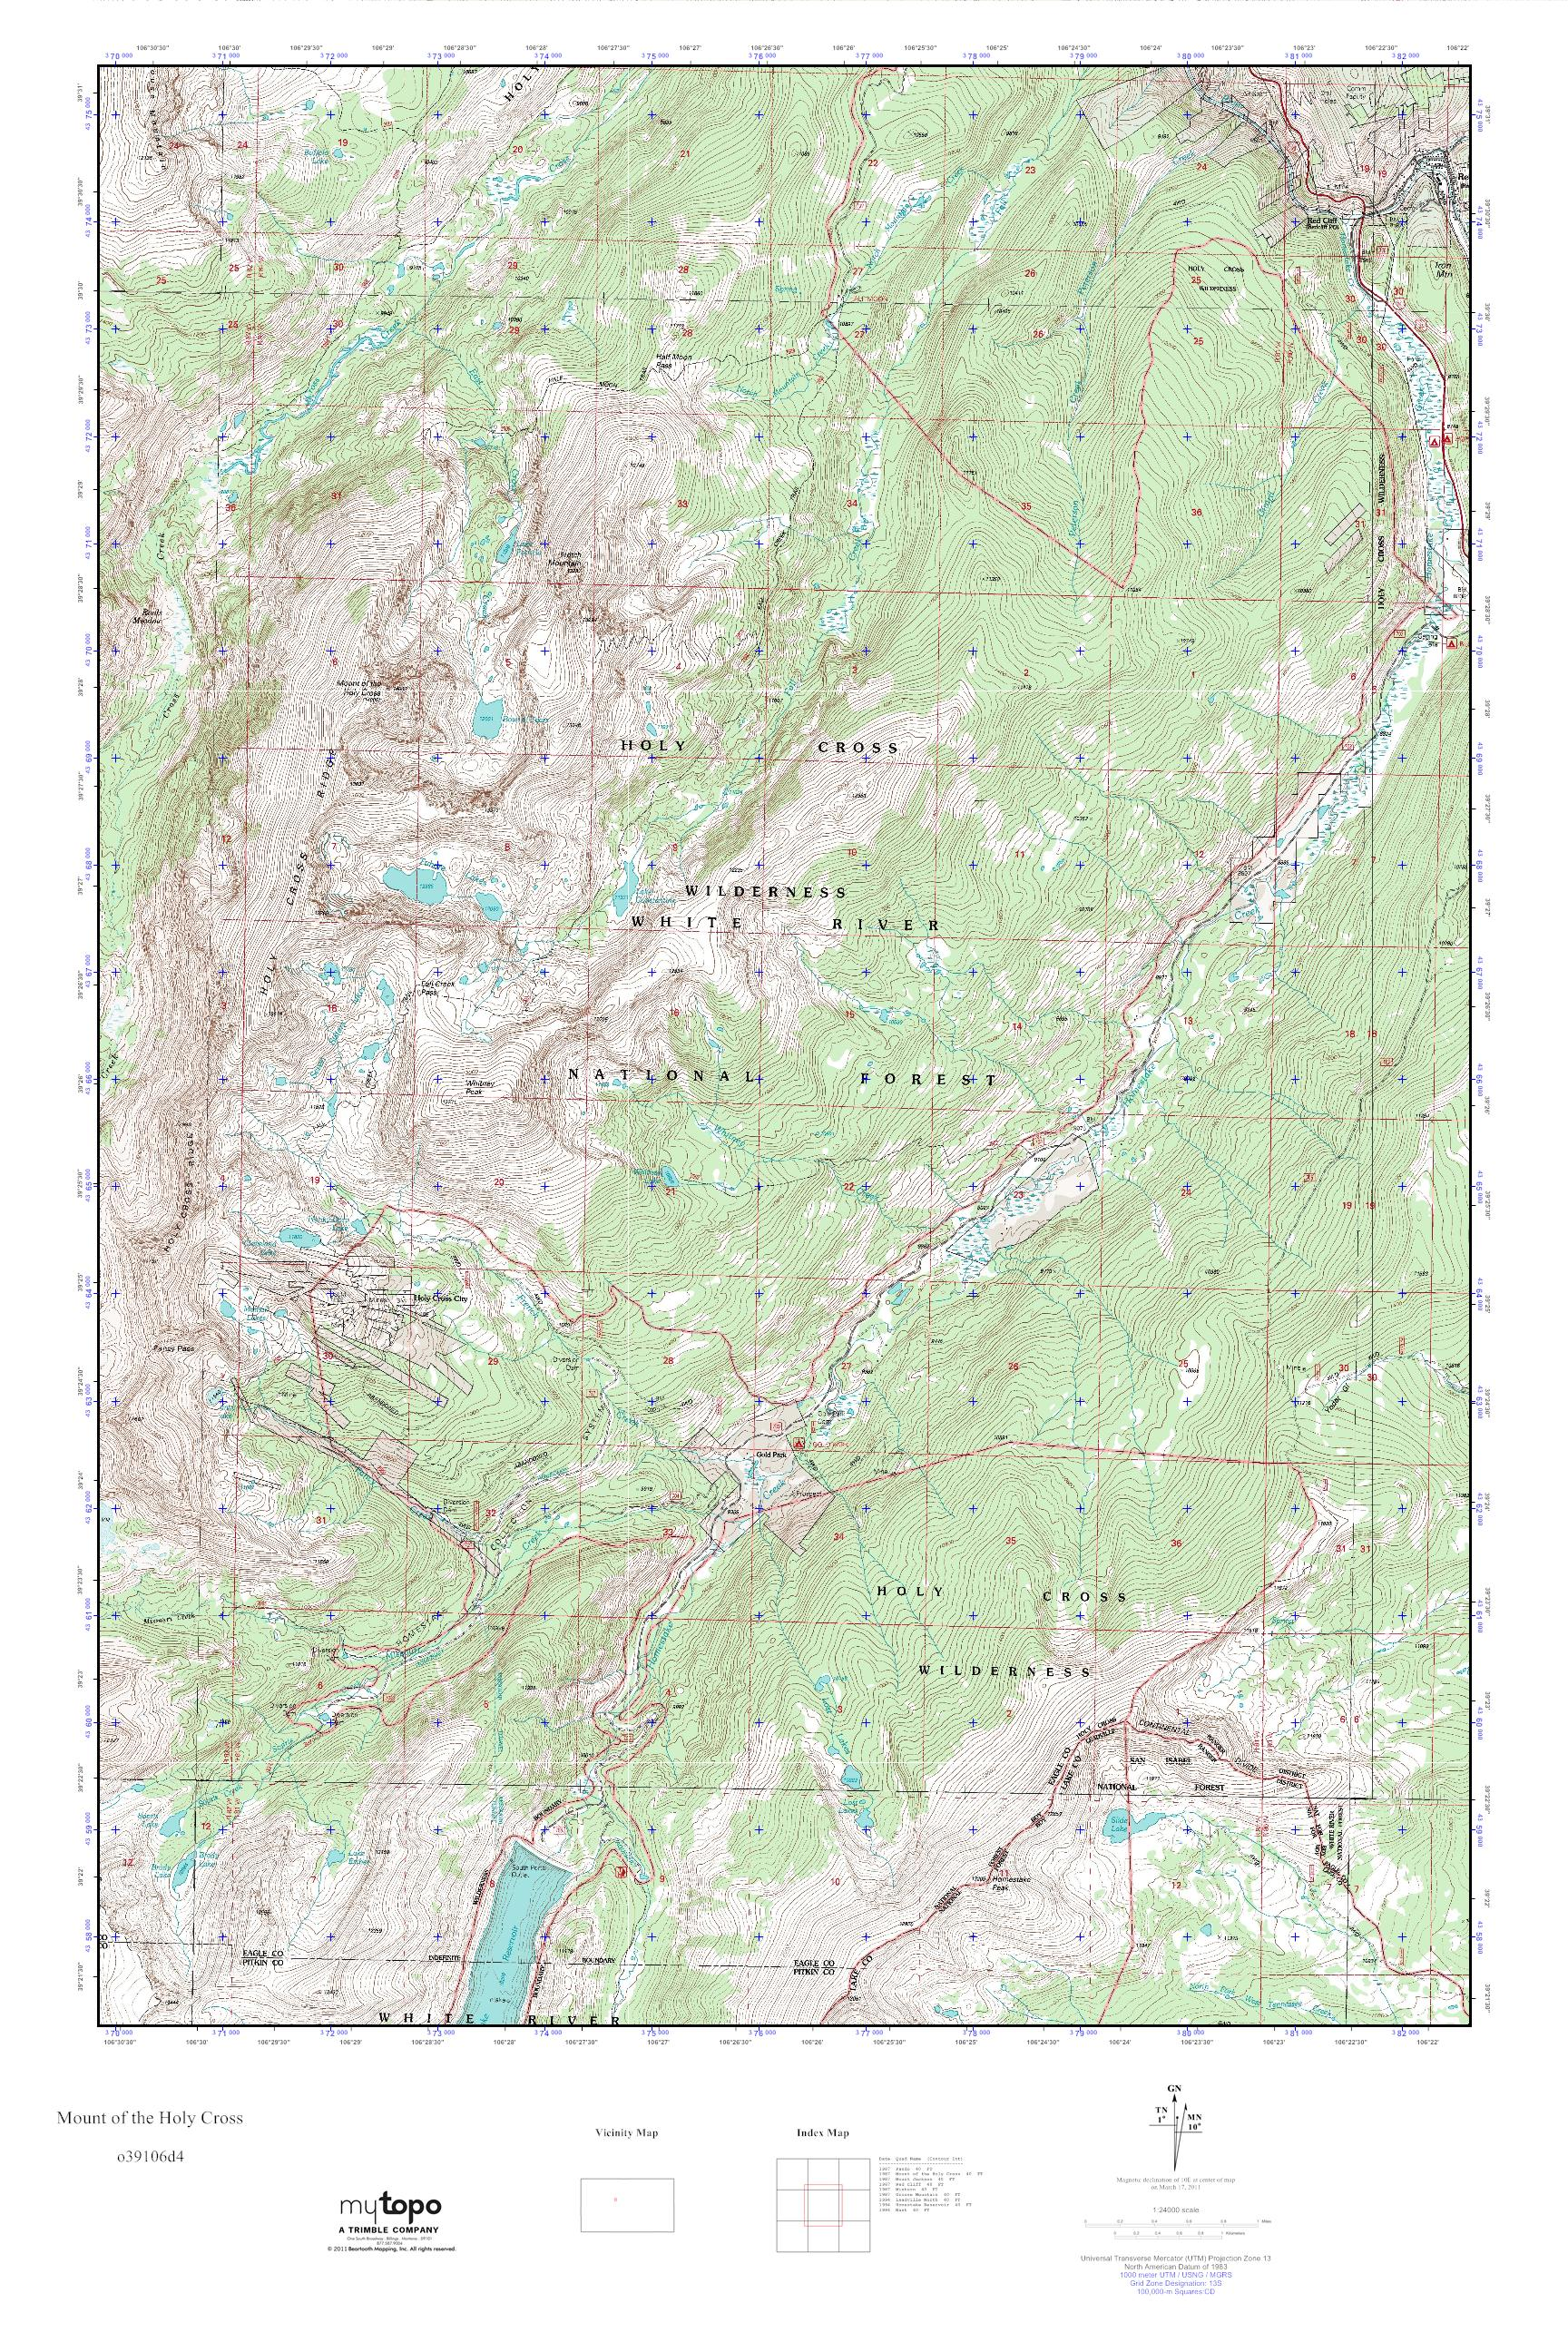 MyTopo Mount of the Holy Cross, Colorado USGS Quad Topo Map